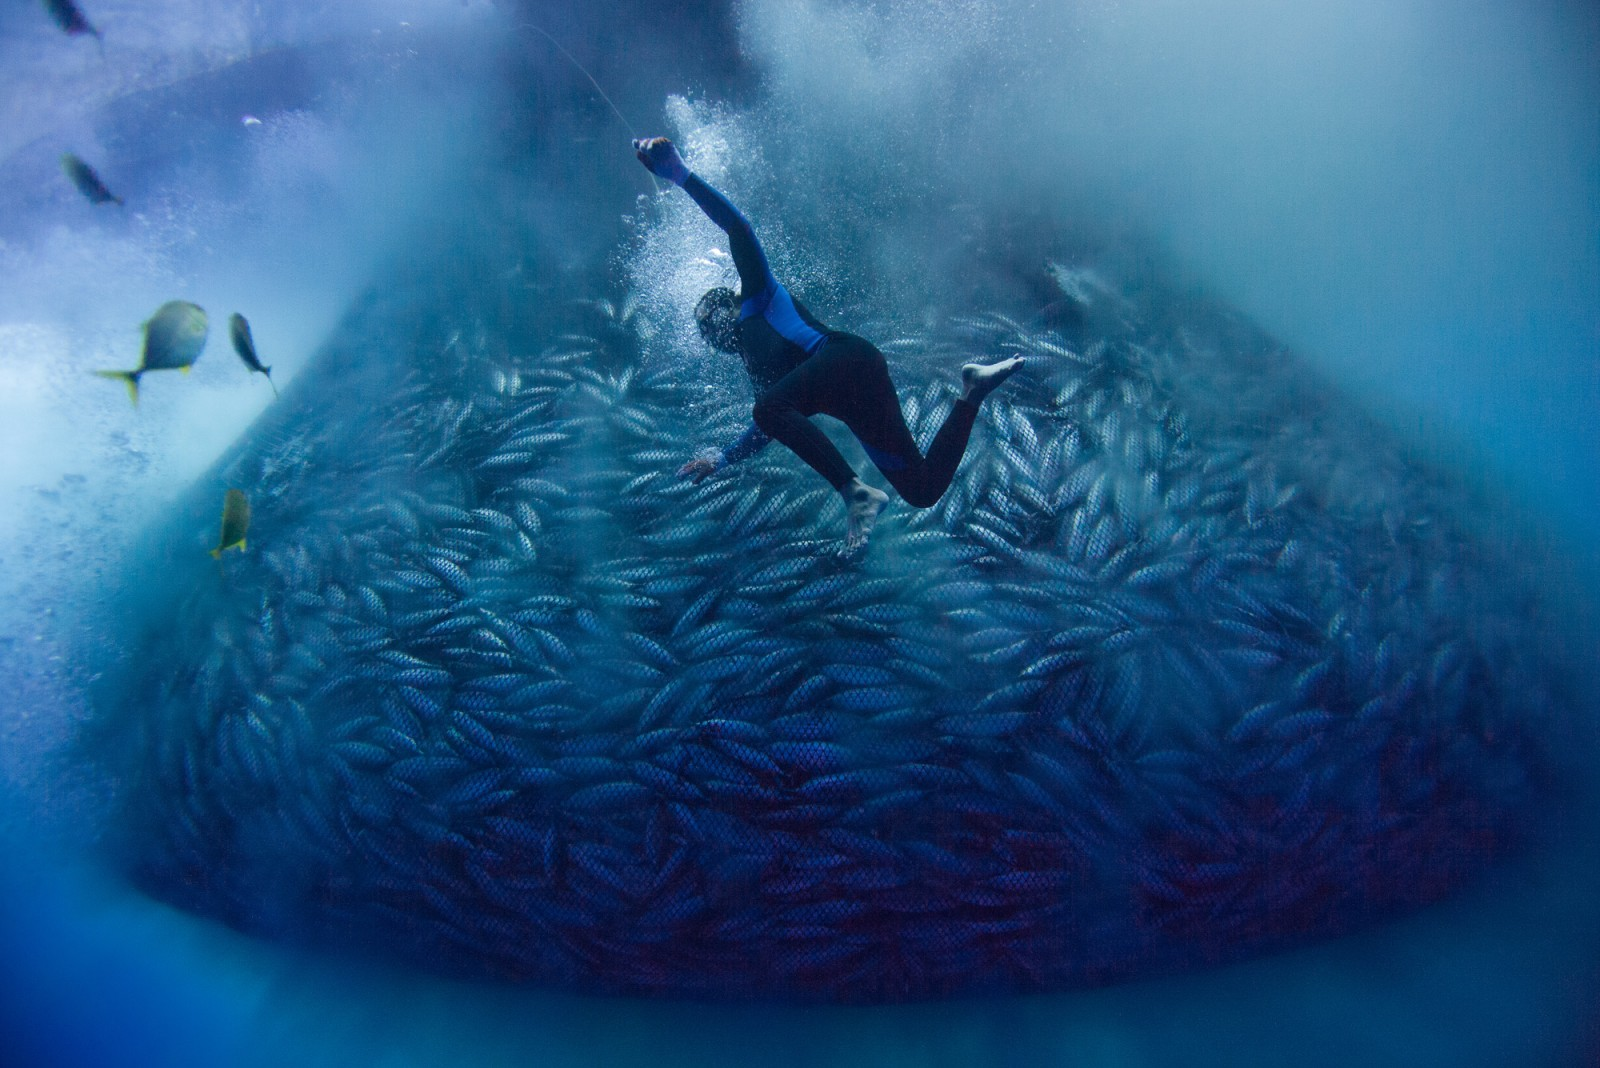 THESE+MEN+DIVE+UP+TO+40+METRES+FOR+FISH+WITH+NOTHING+BUT+A+HOSEPIPE+TO+KEEP+THEM+ALIVE